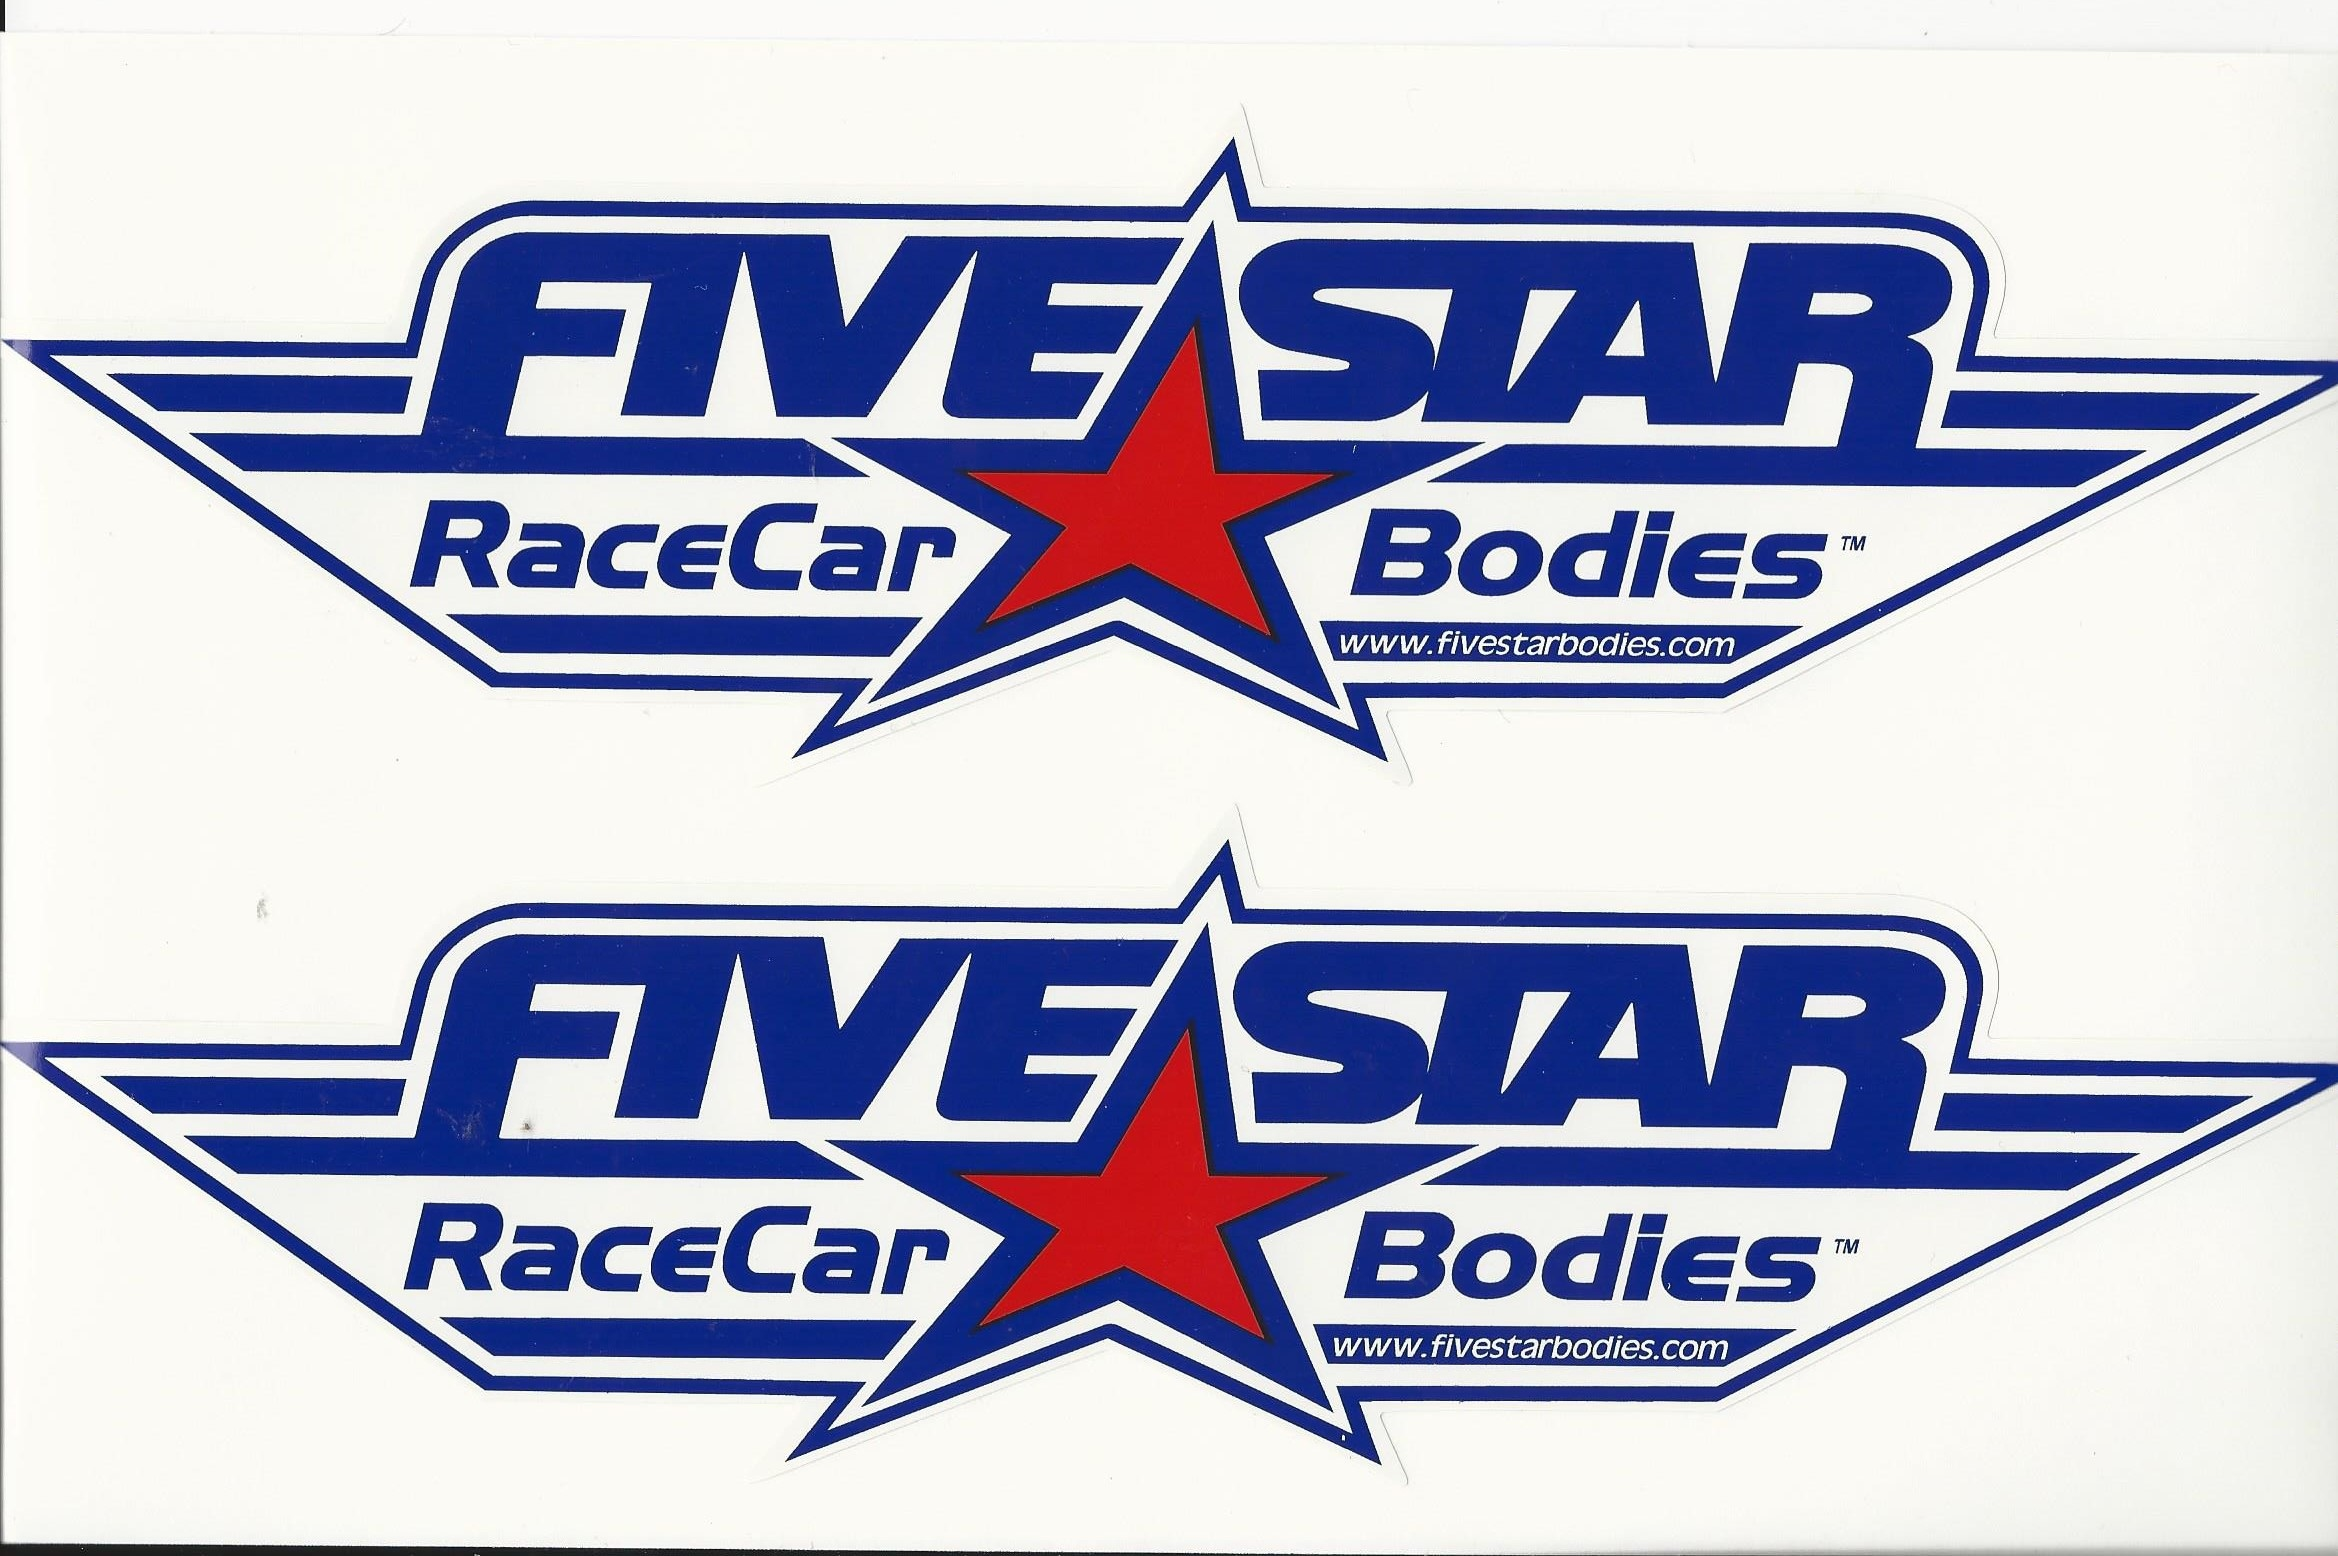 Muscle Car Decals >> Five Star Bodies Racing Decal 1 foot Long | CrashDaddy ...